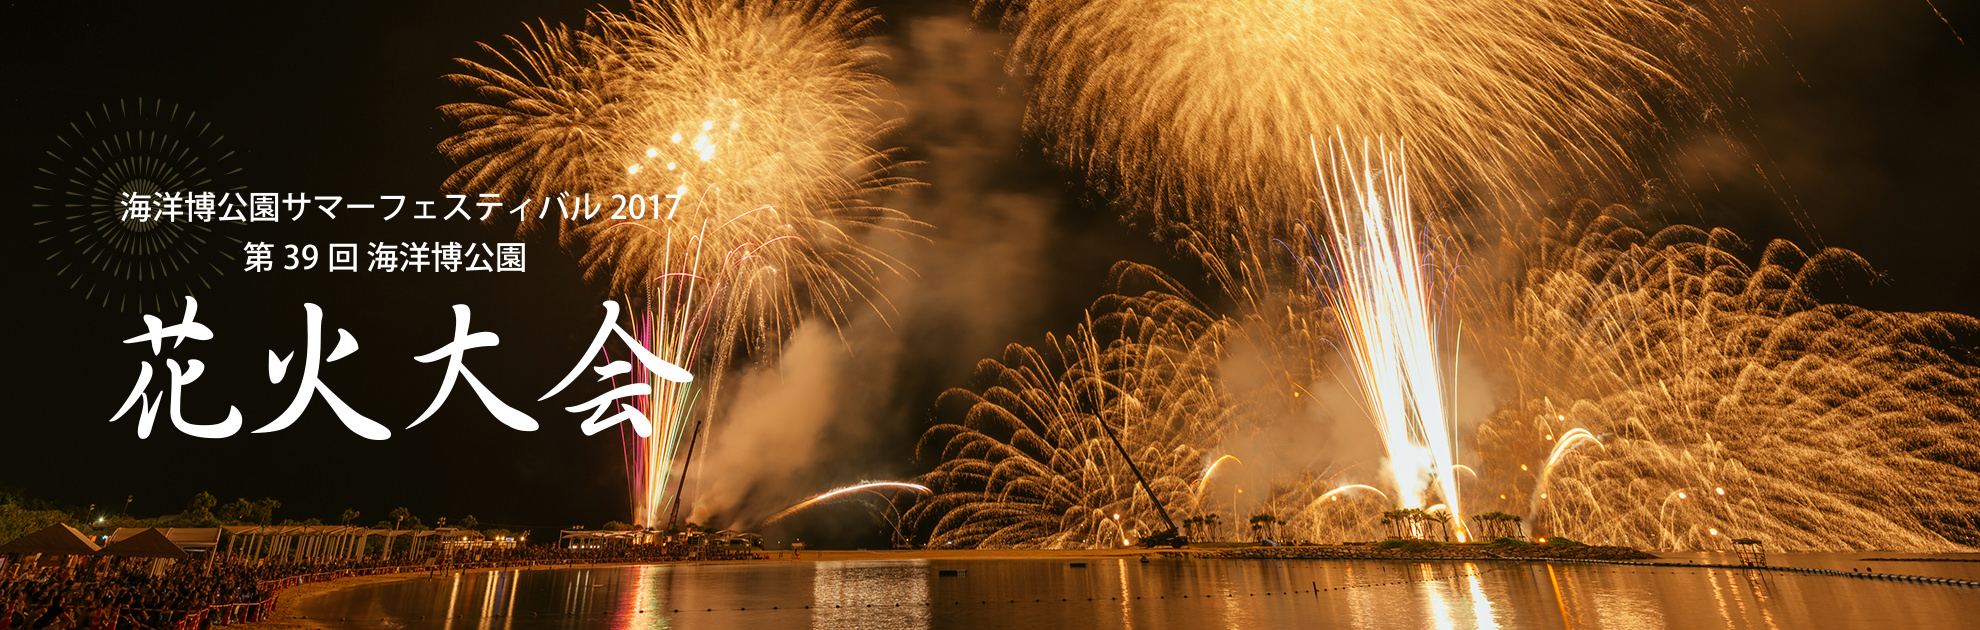 Ocean Expo Park summer festival 2017 (the 39th Ocean Expo Park fireworks display) date decision!